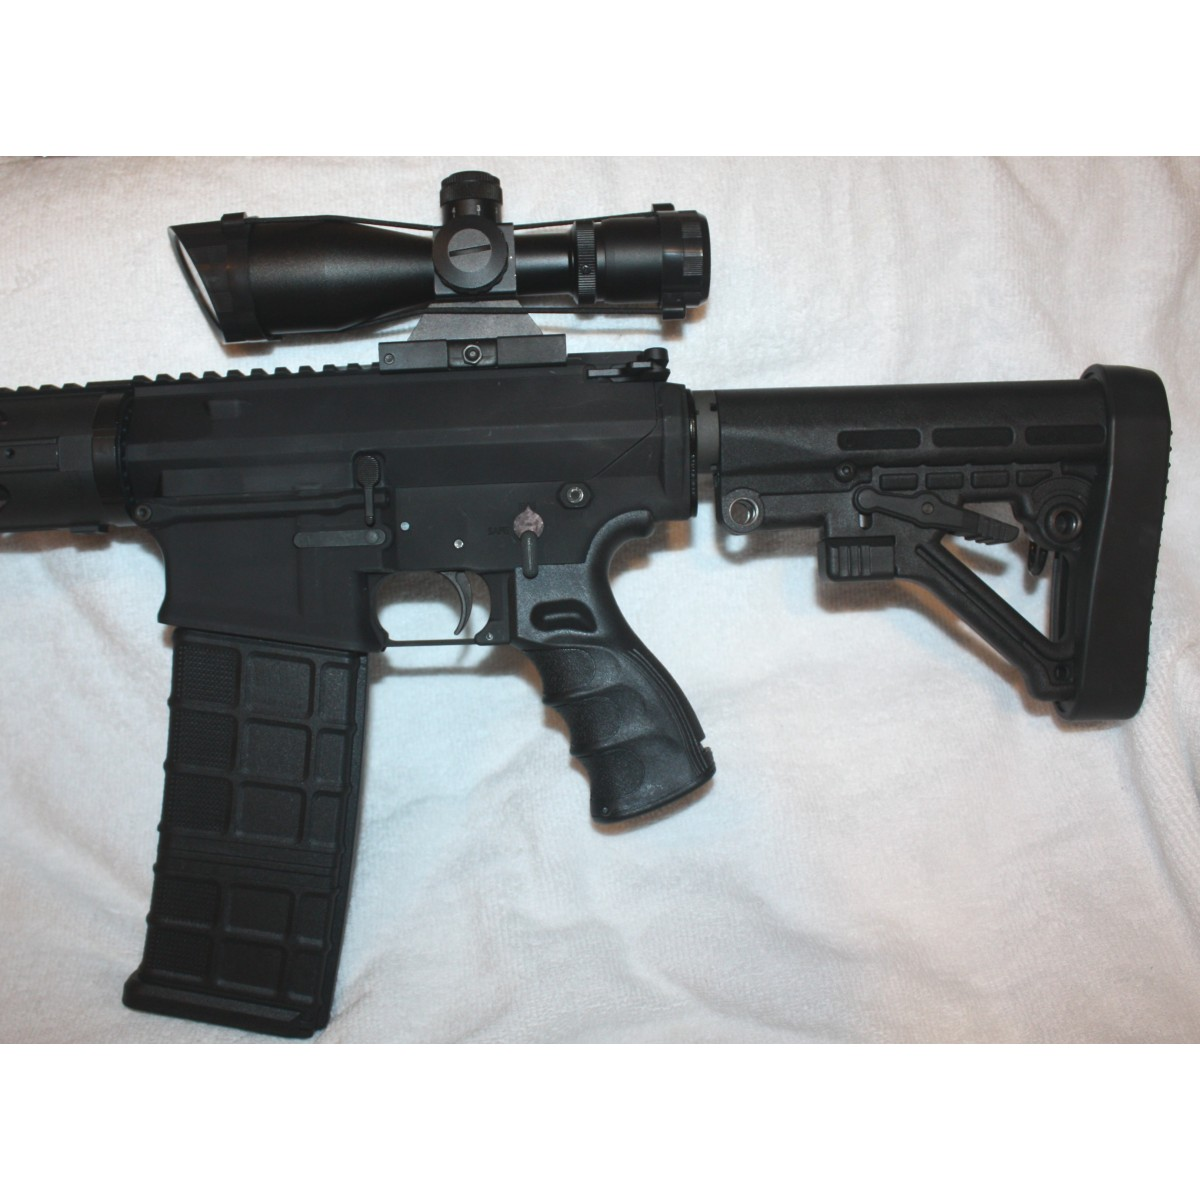 Stag 10 DPMS 308 Rifle, 16 Inch Barrel, Quad Stock, Enhanced